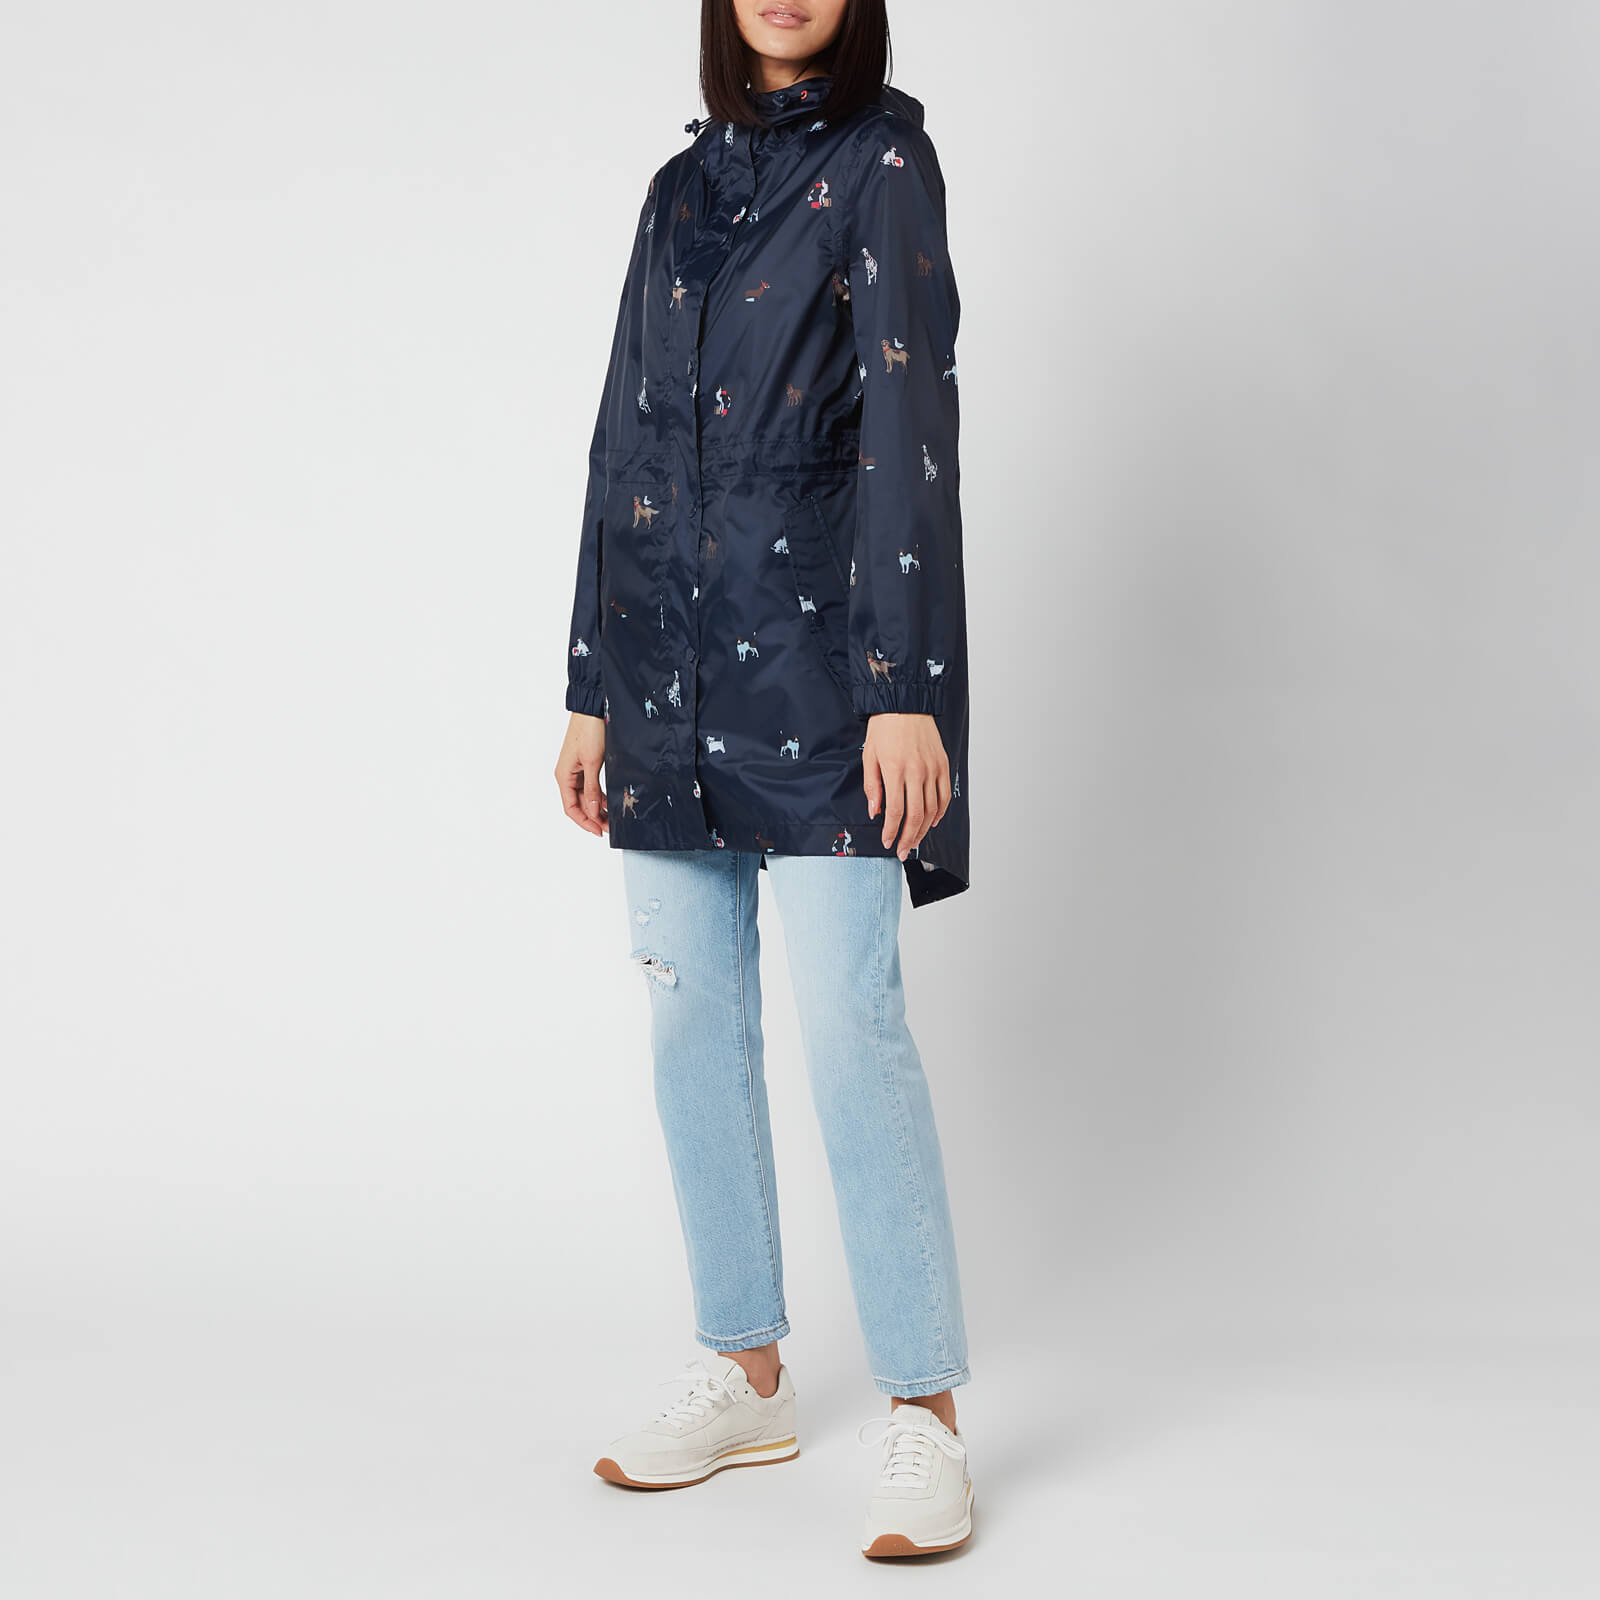 Joules Women's Golightly Packable Jacket - Navy Dog - Uk 8